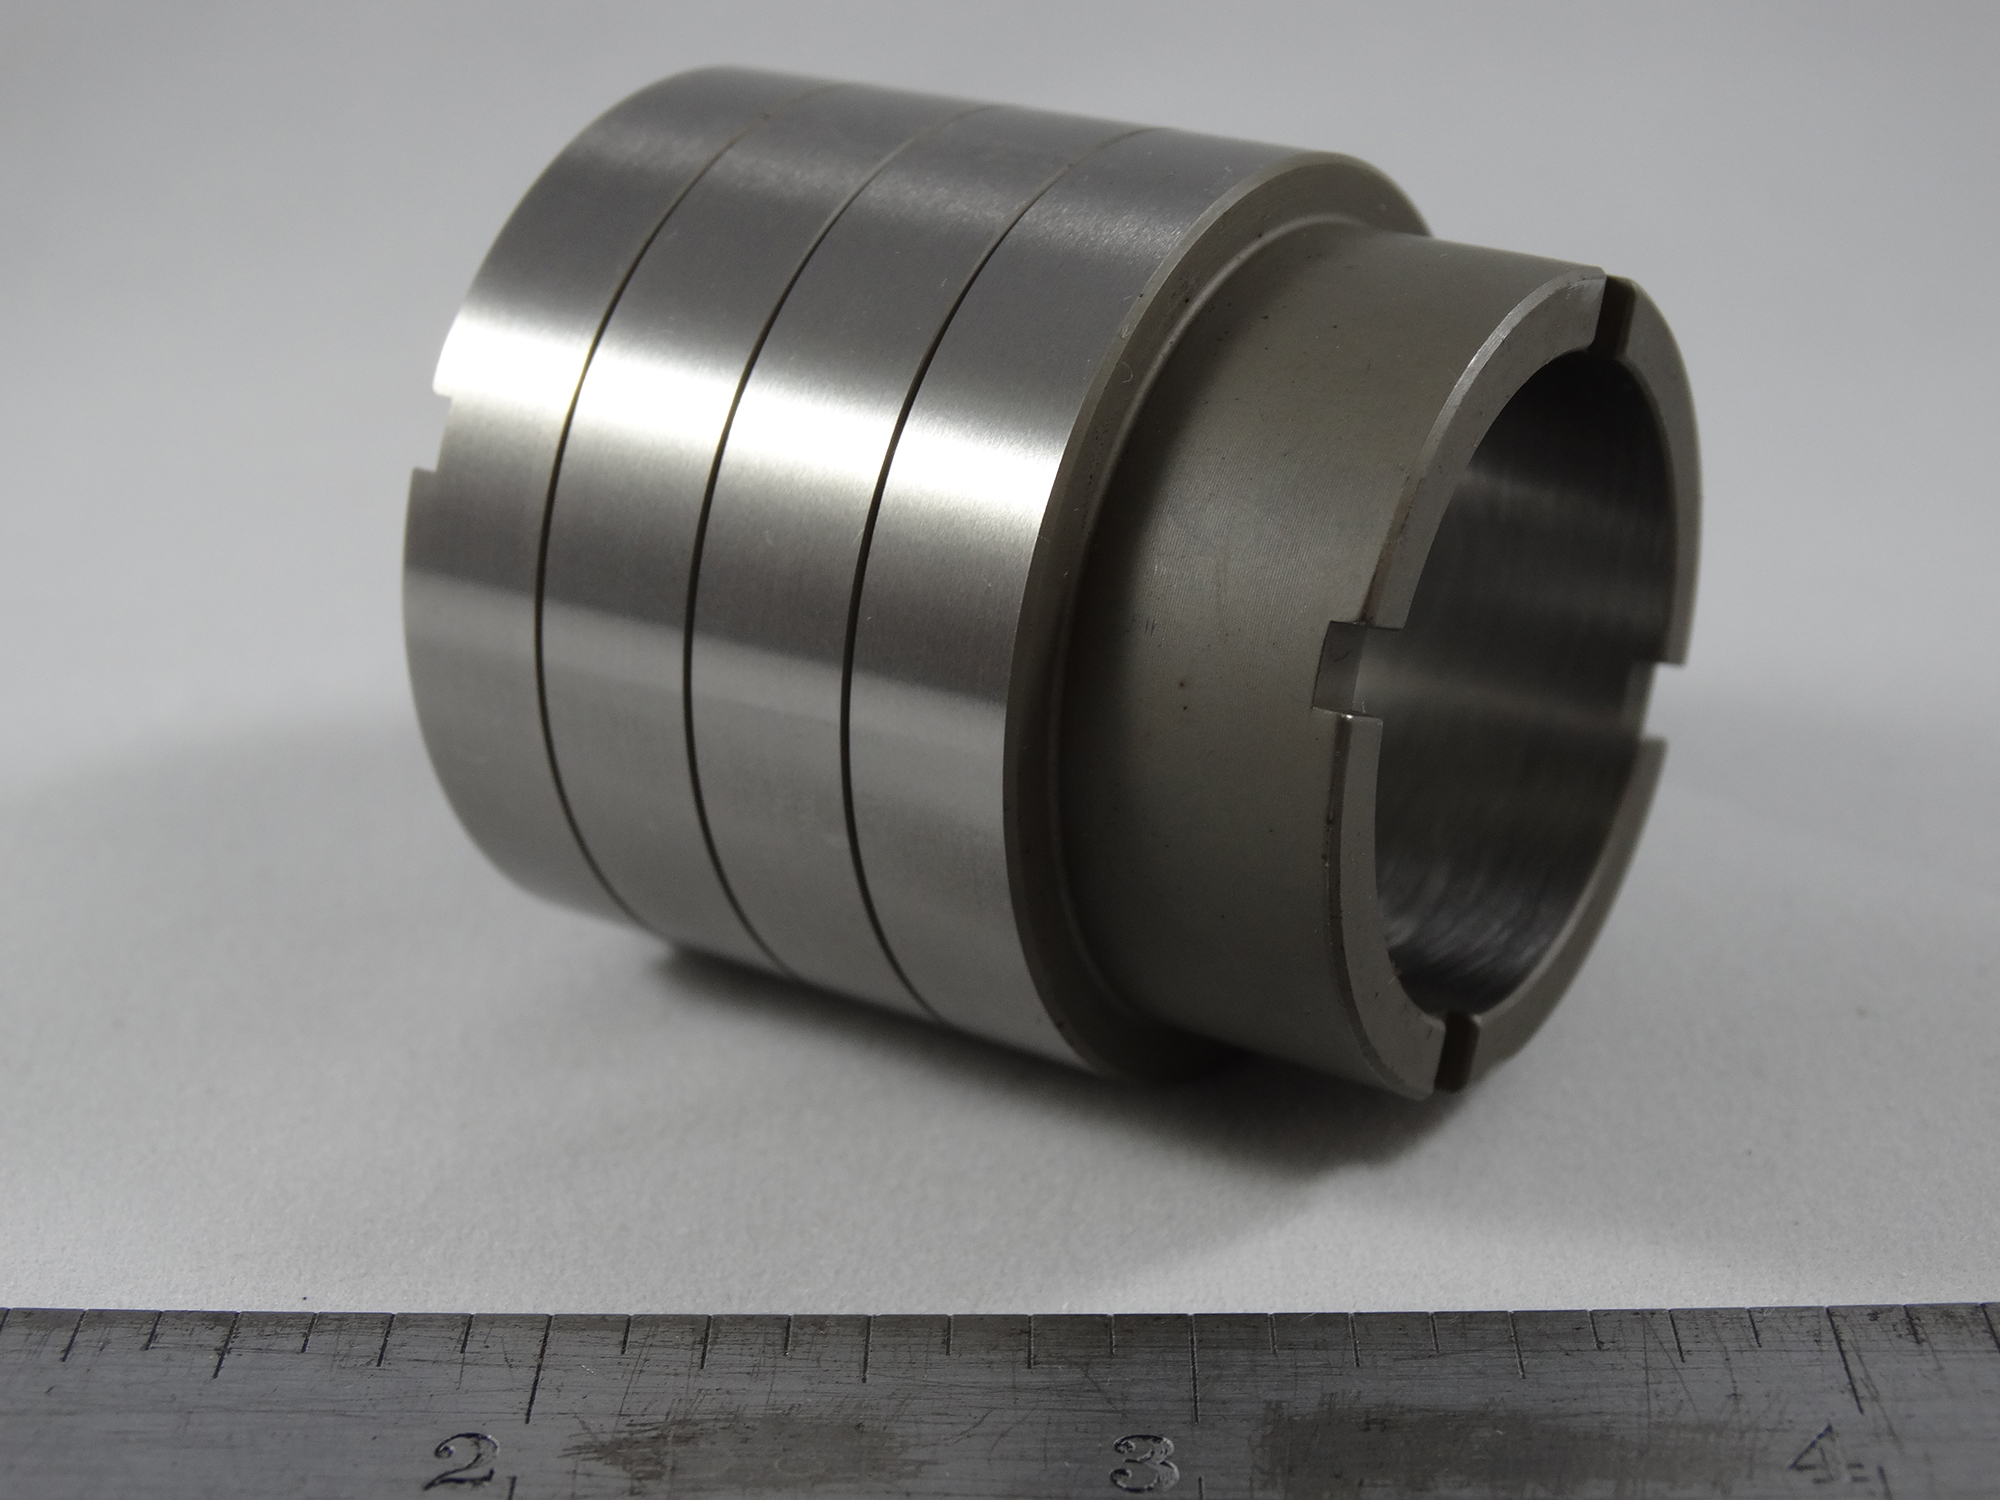 CNC Turned Sleeve Part - Material: 8620 Alloy Steel - Heat Treated and Centerless Gound O.D. and Honed I.D.